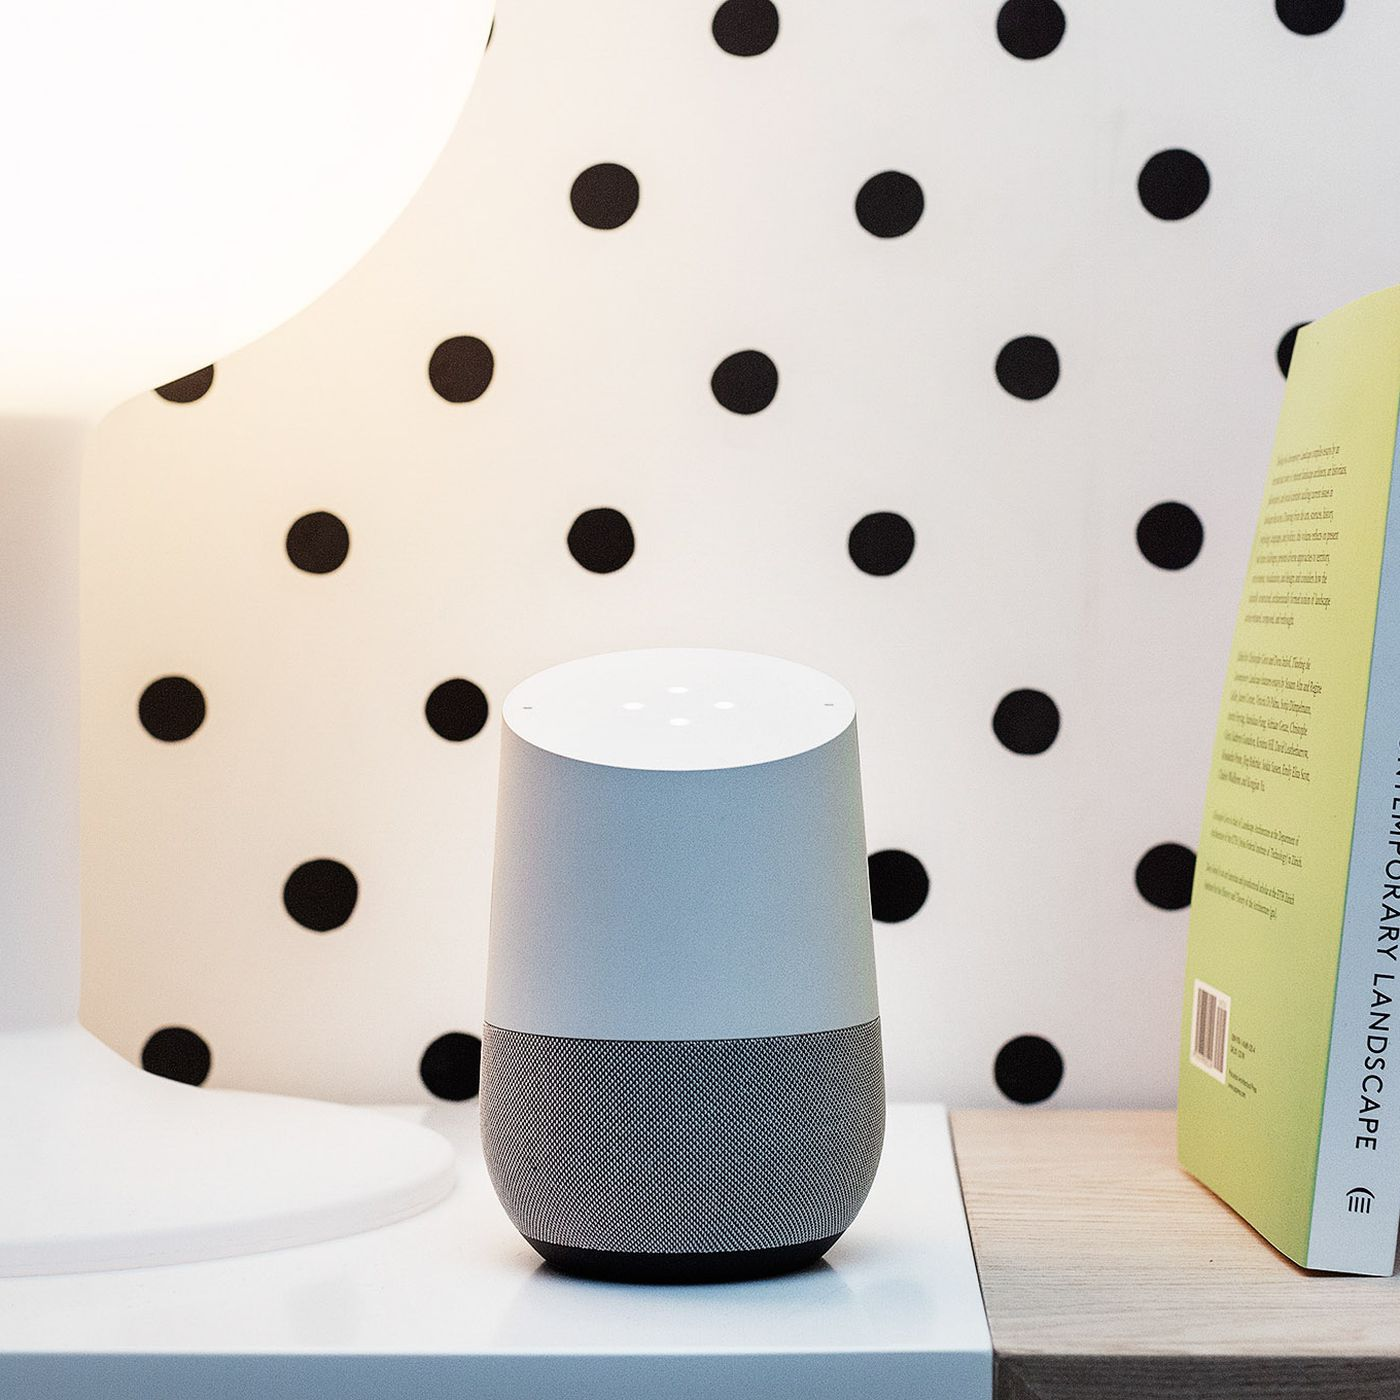 Google Home now supports free mobile and landline calls in